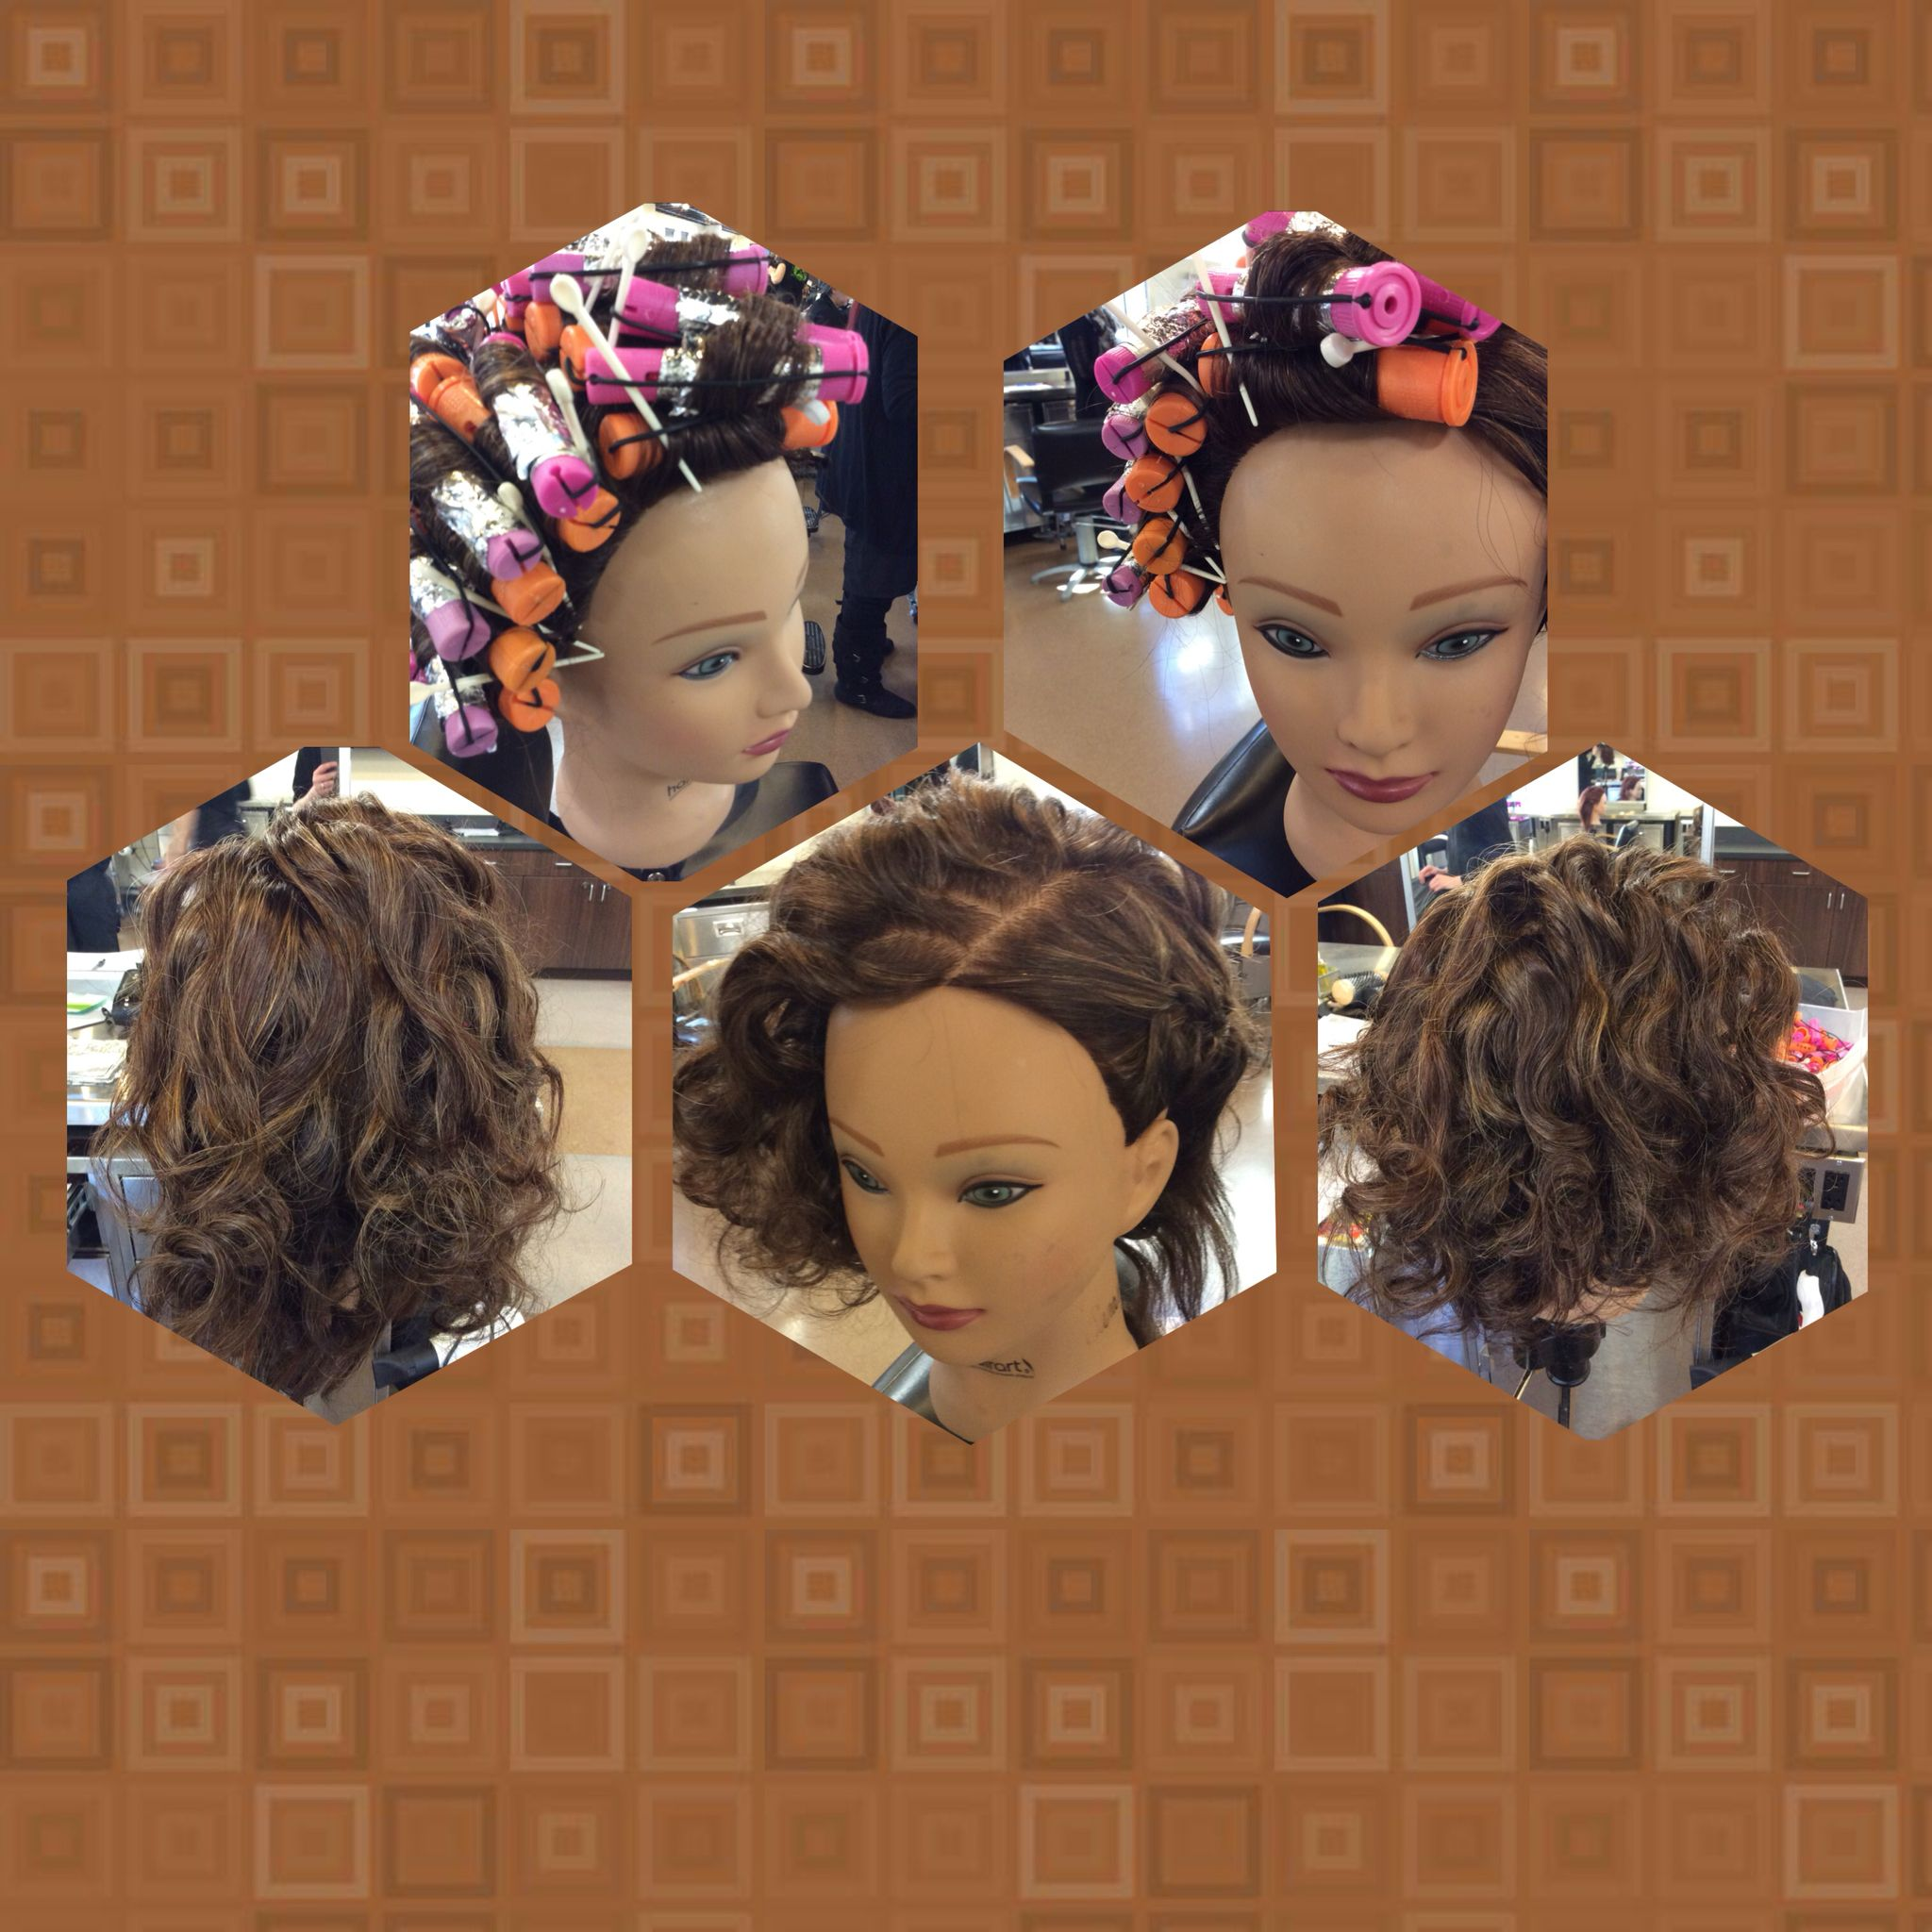 Straight perm winnipeg - Root Perm During And After Adds Volume And Can Be Done For New Growth Of